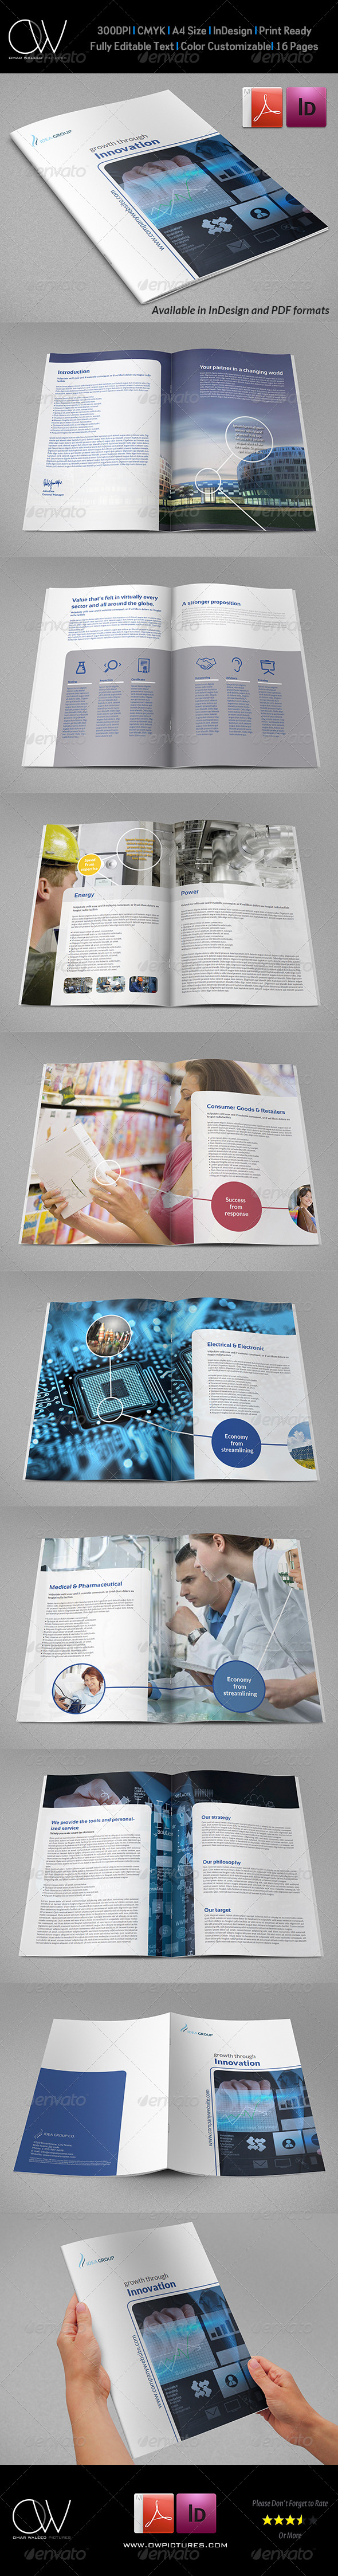 Corporate Brochure Template Vol.27 - 16 Pages - Corporate Brochures